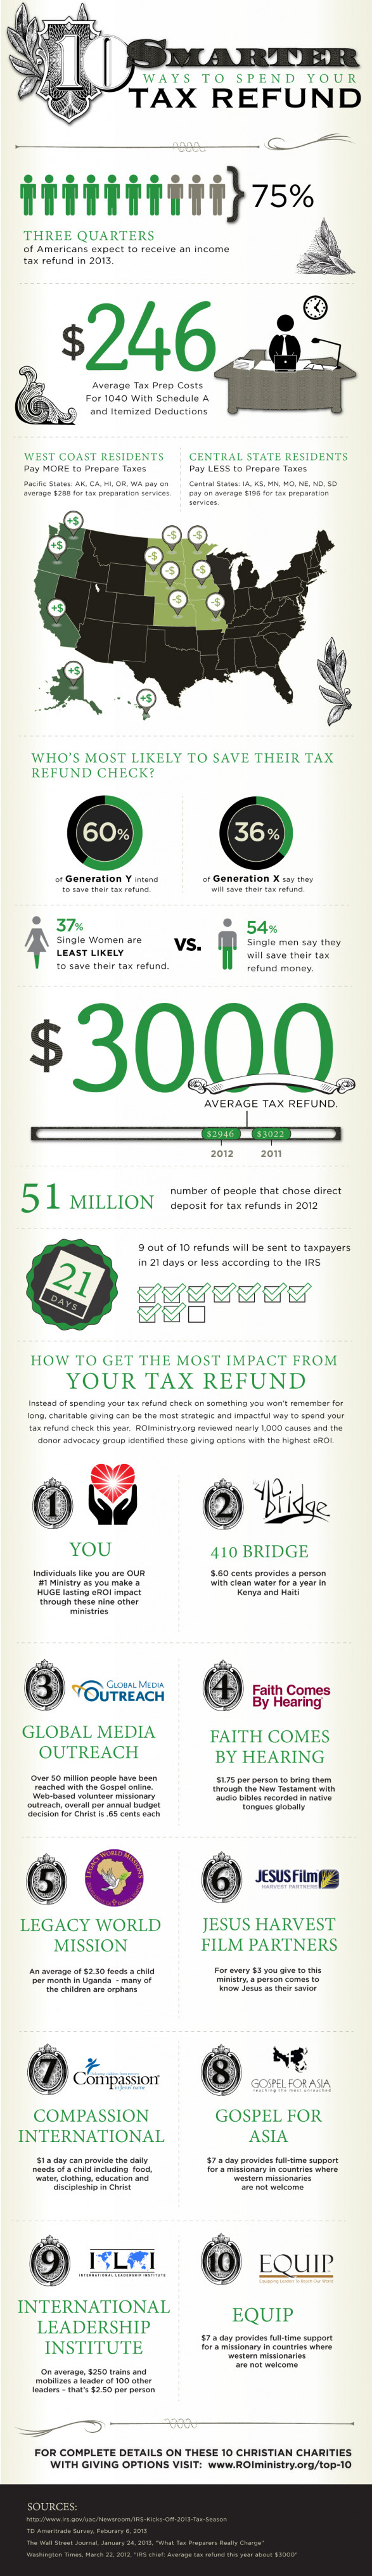 10 Smarter Ways To Spend Your 2013 Tax Refund